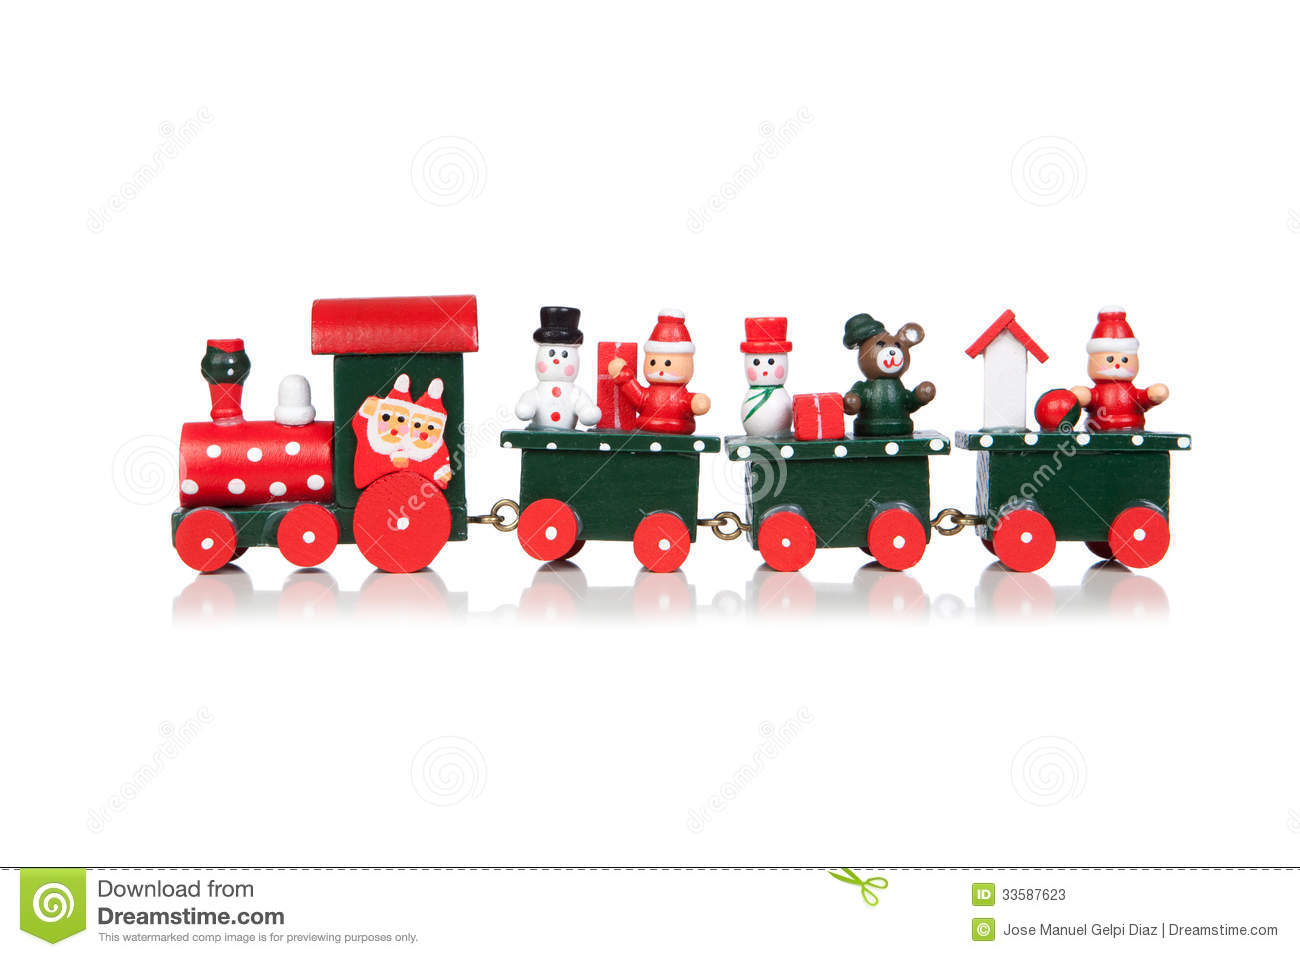 Christmas Toys Clip Art : Christmas toy train stock image of leisure bright